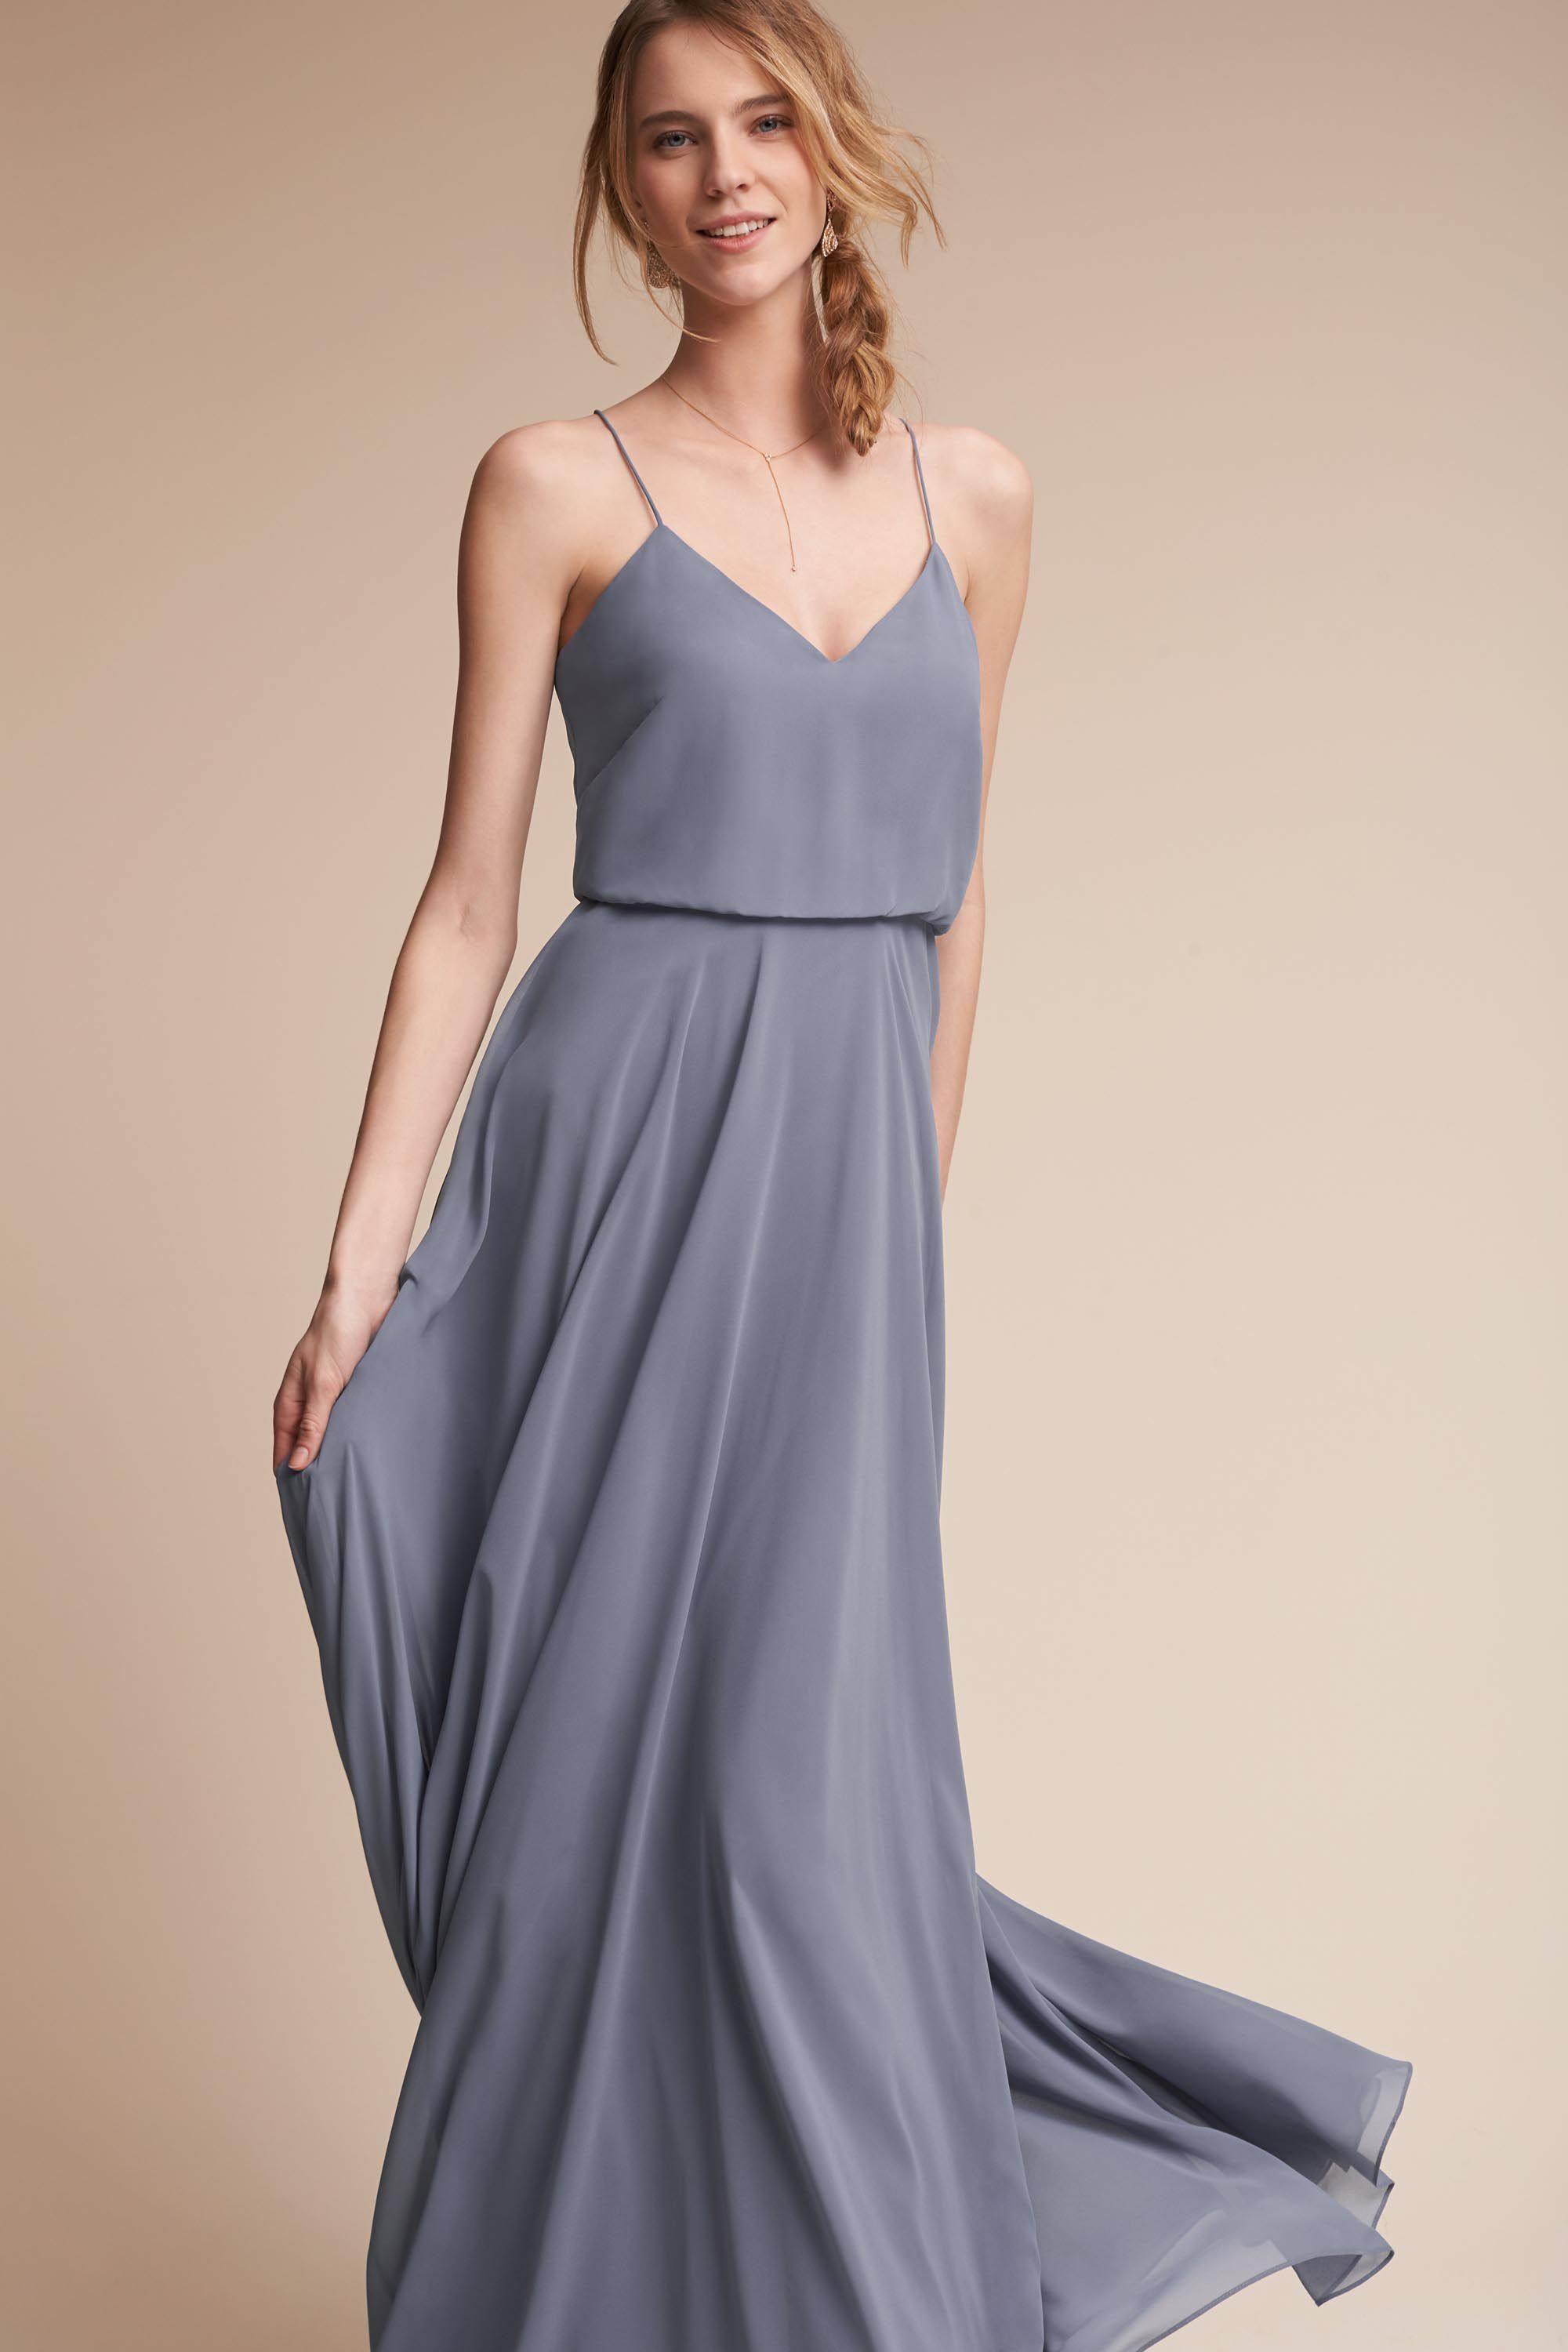 Inesse dress ivory sage multi in sale bhldn this review is frominesse dress ombrellifo Image collections